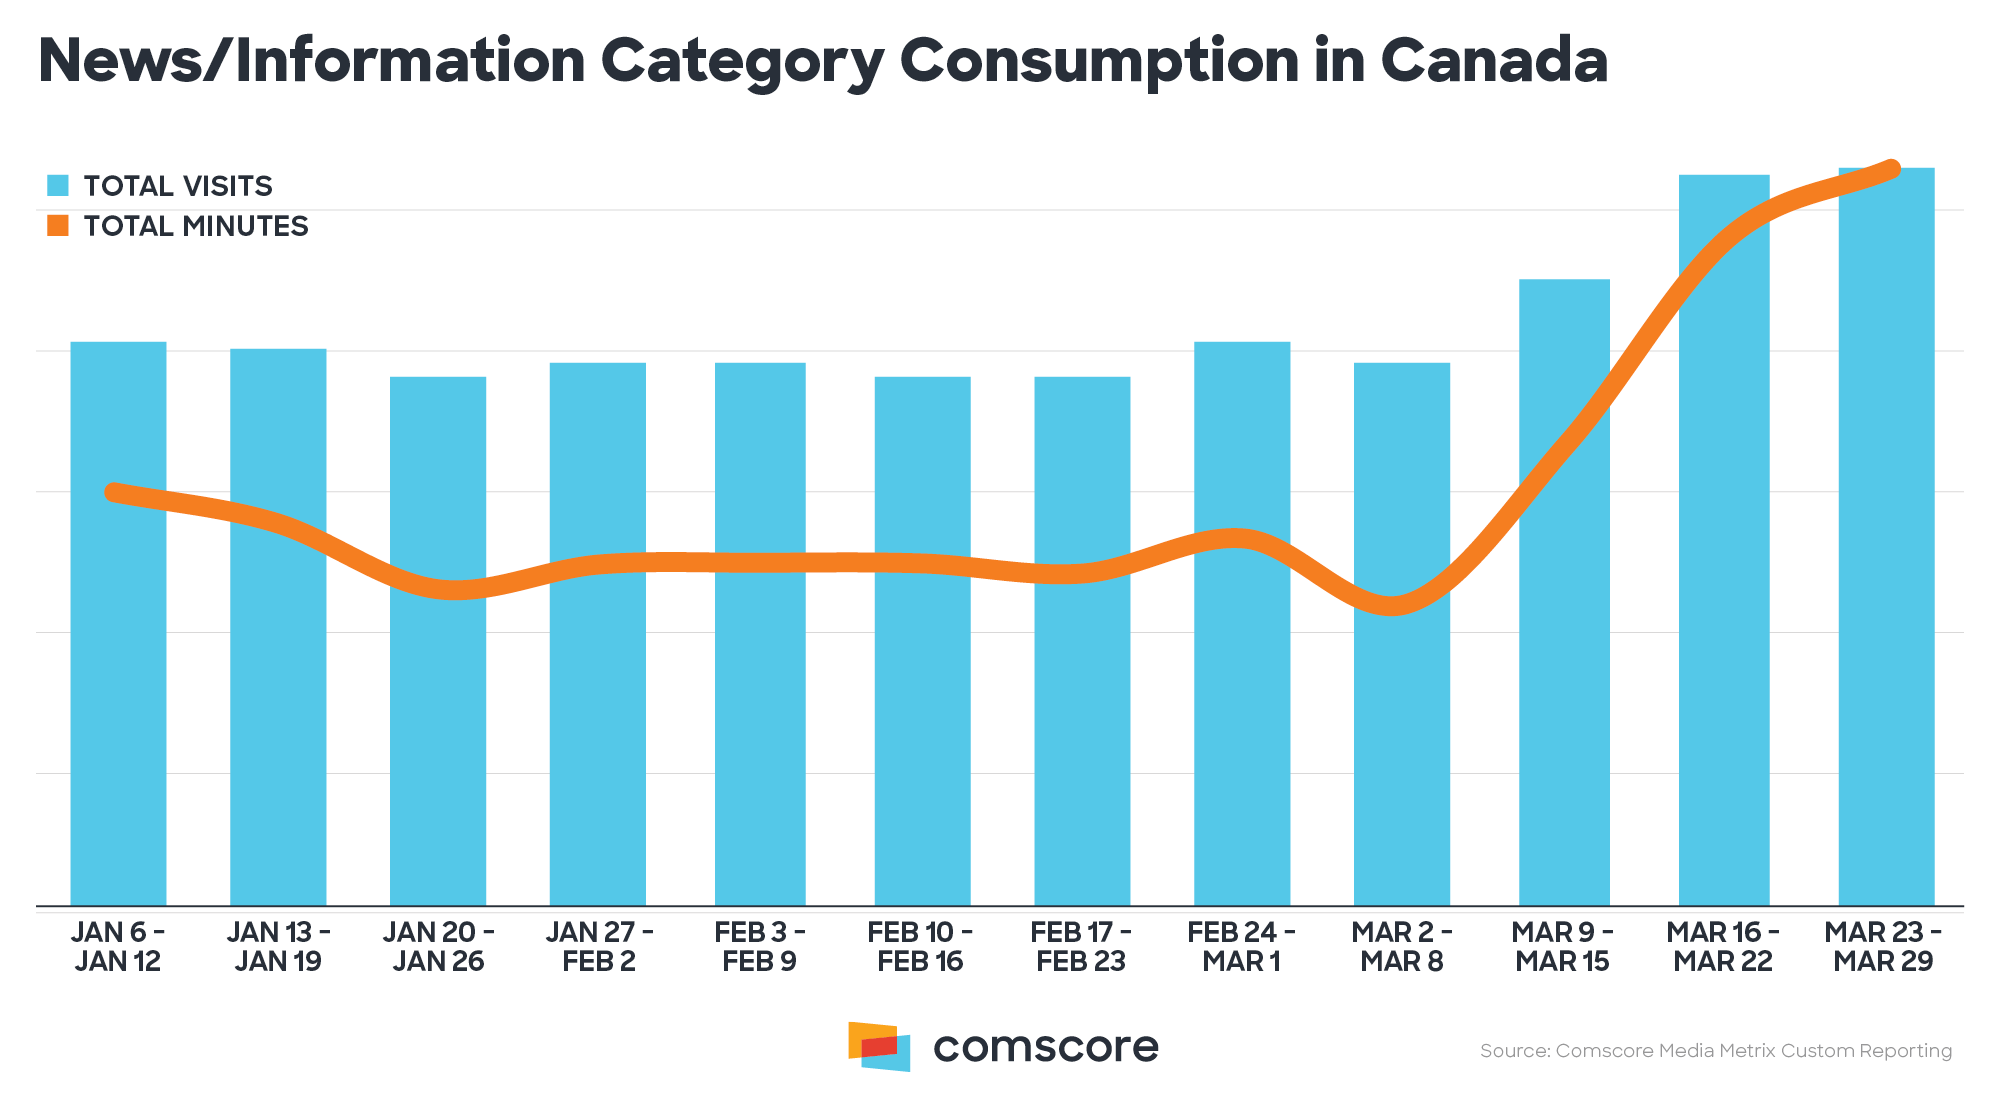 News Information Category Consumption in Canada